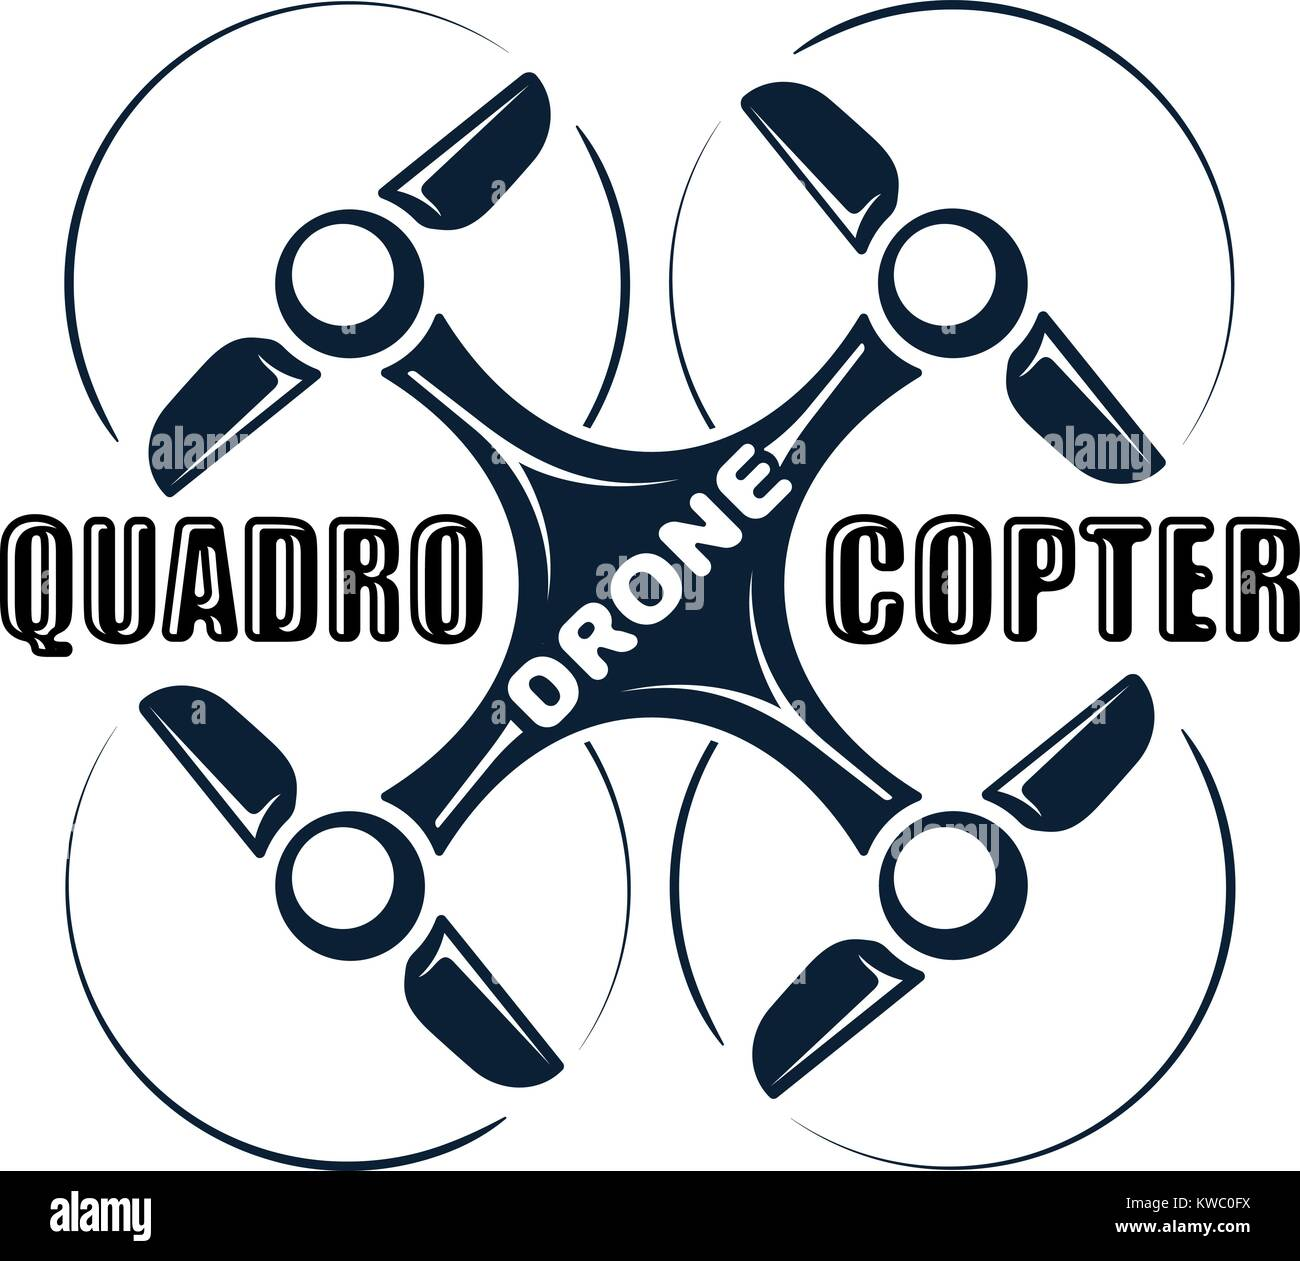 Quadrocopter drone abstract icon for logo or other design - Stock Image